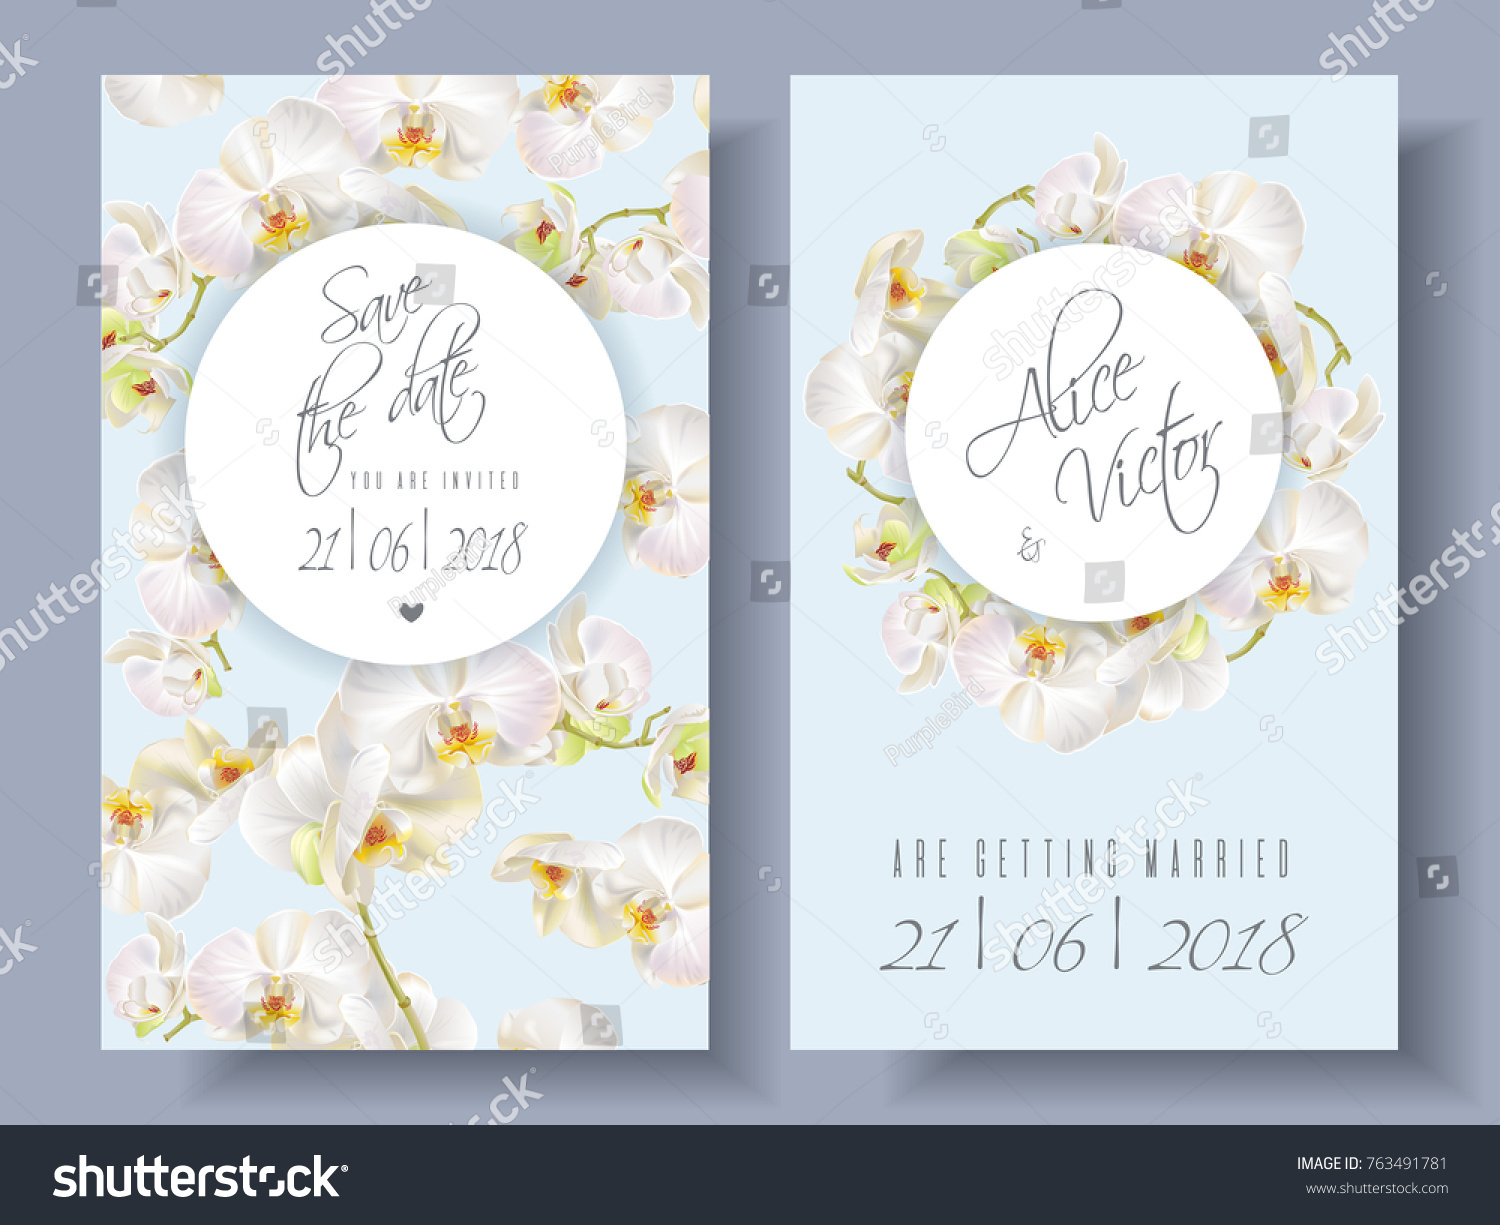 Vector Wedding Invitation Cards White Orchid Stock Vector (Royalty ...